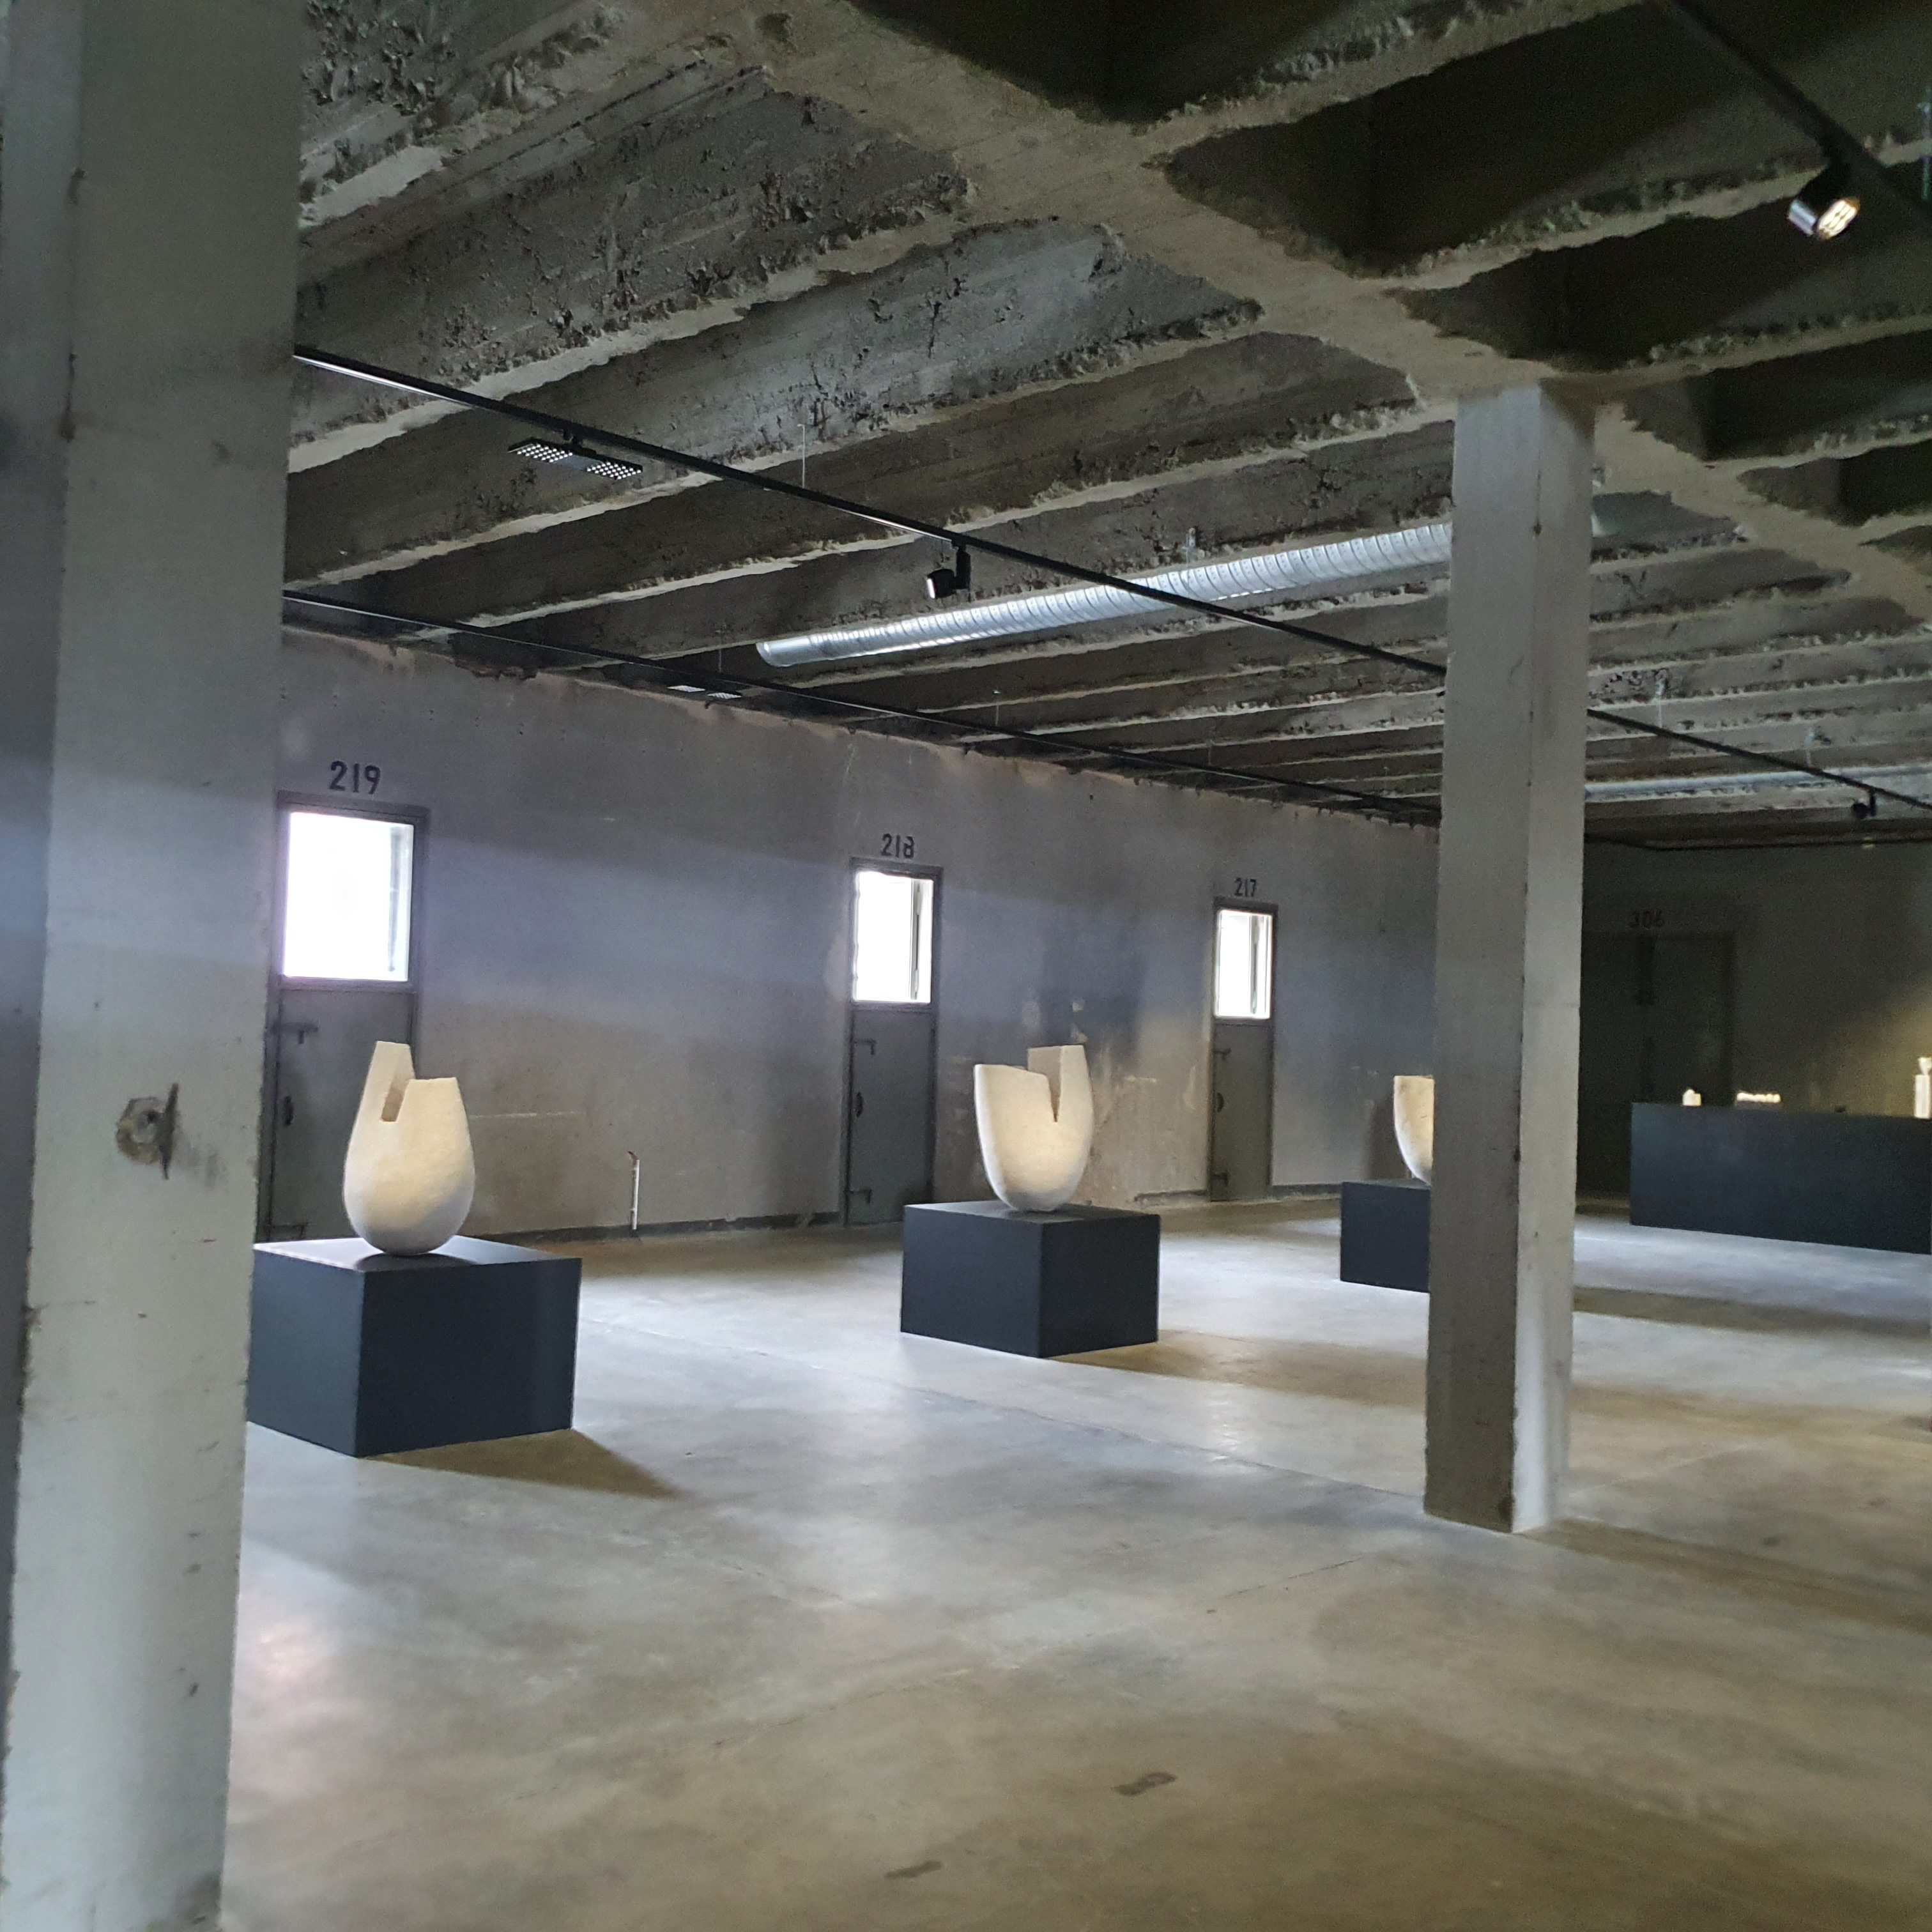 Three large white urns/vases in a bare, concrete room. Calix exhibition by Päivi Rintaniemi